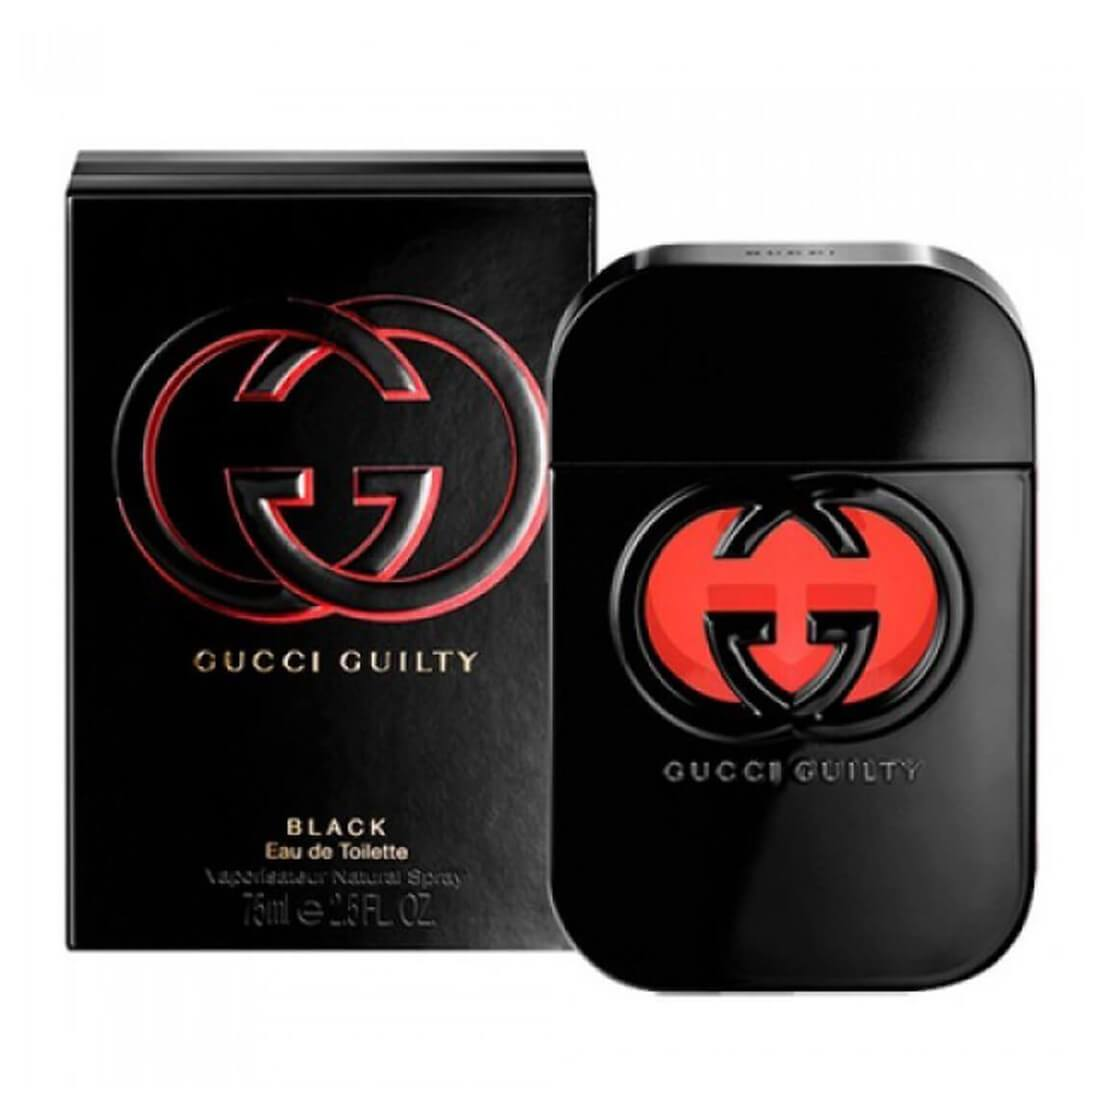 Gucci Guilty Black Perfume For Women - 75ml